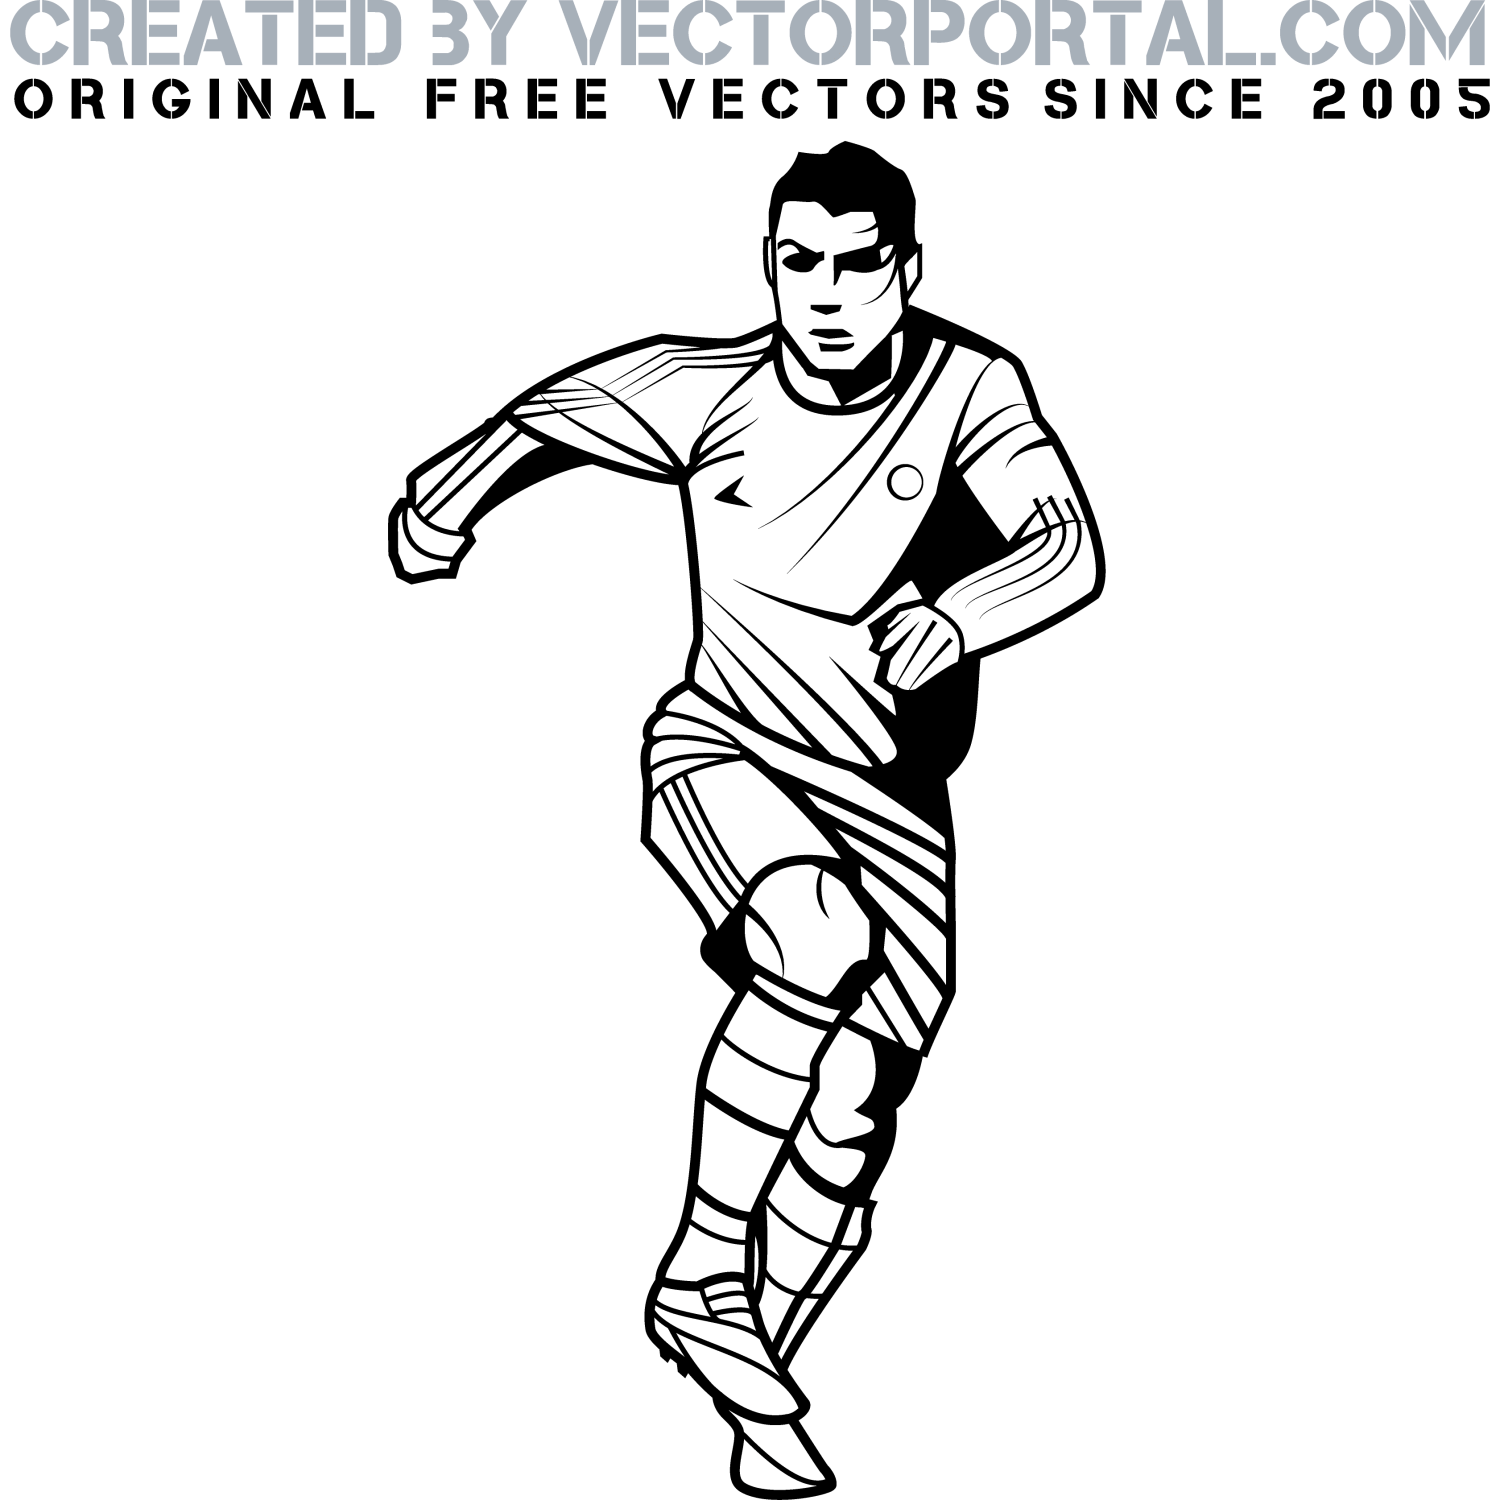 Images For Soccer Player Silhouette Free Vector